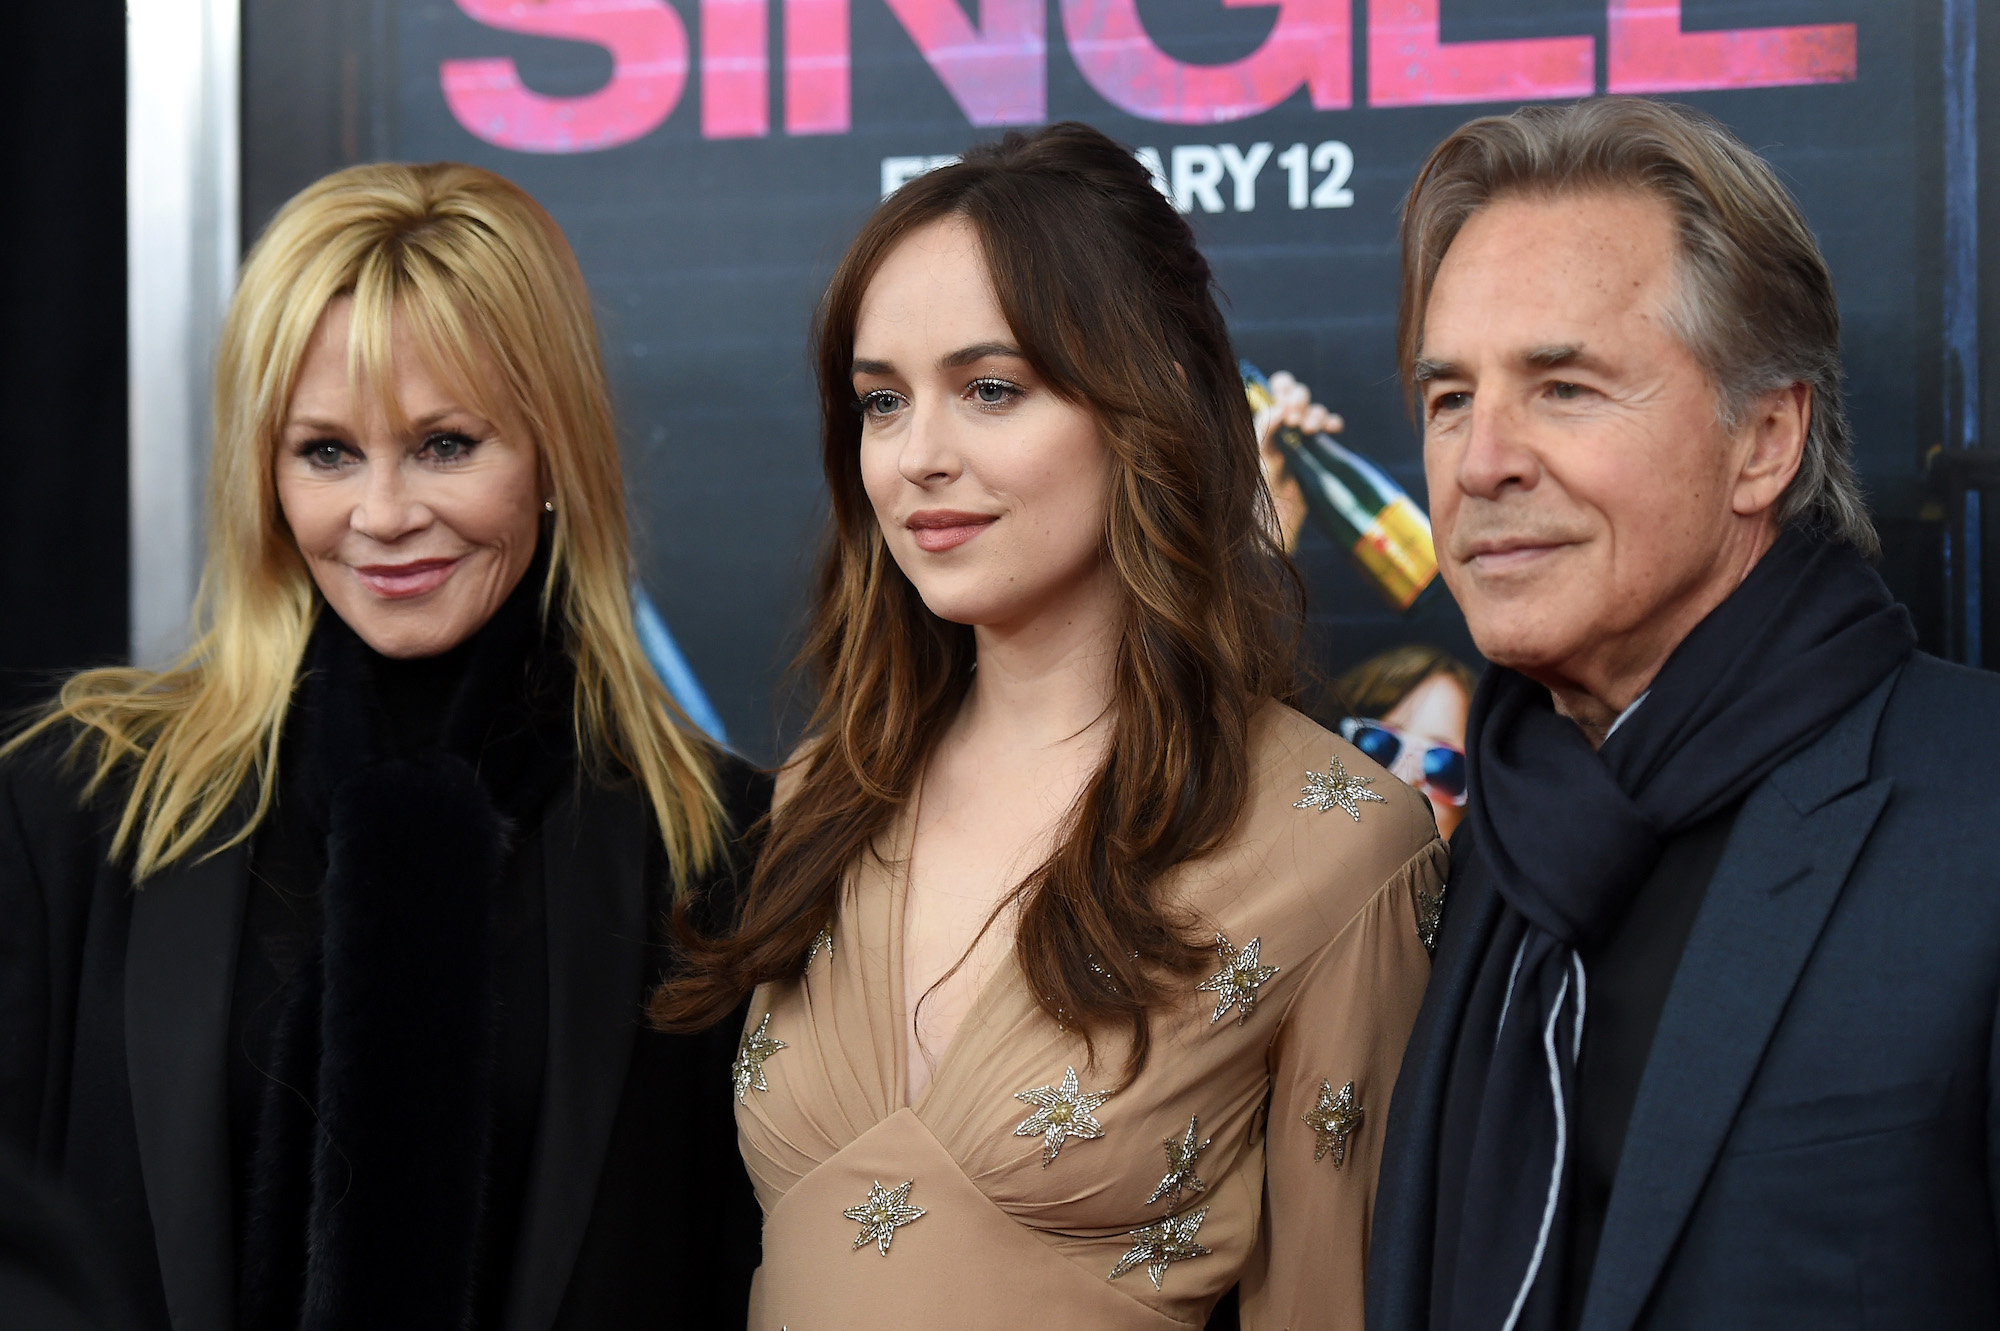 Melanie Griffith, Dakota Johnson, and Don Johnson at the New York premiere of 'How To Be Single' at the NYU Skirball Center on February 3, 2016.